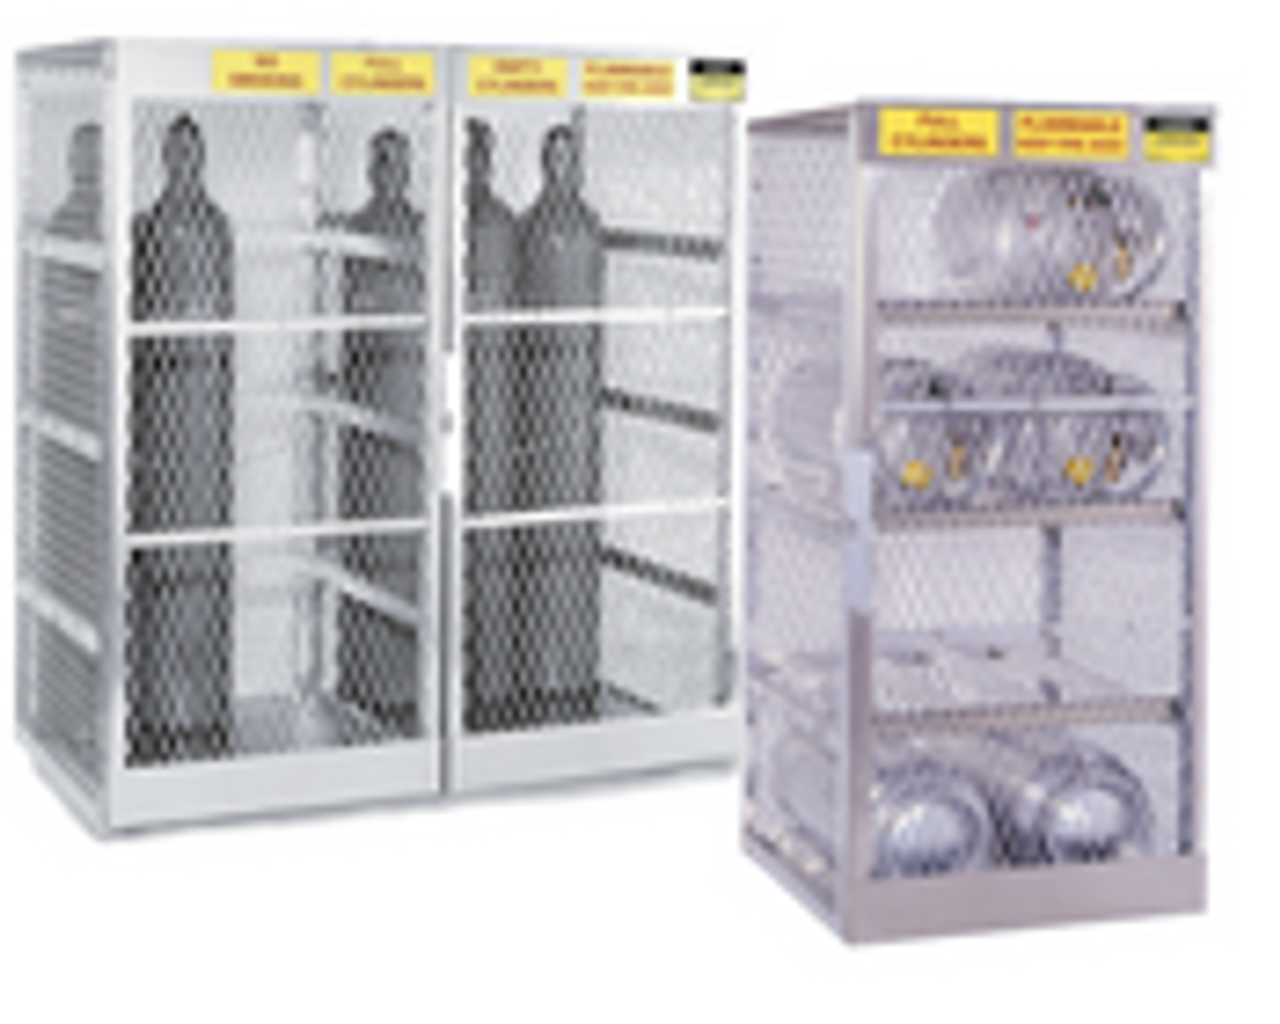 LPG Gas Cylinder Locker Cabinets